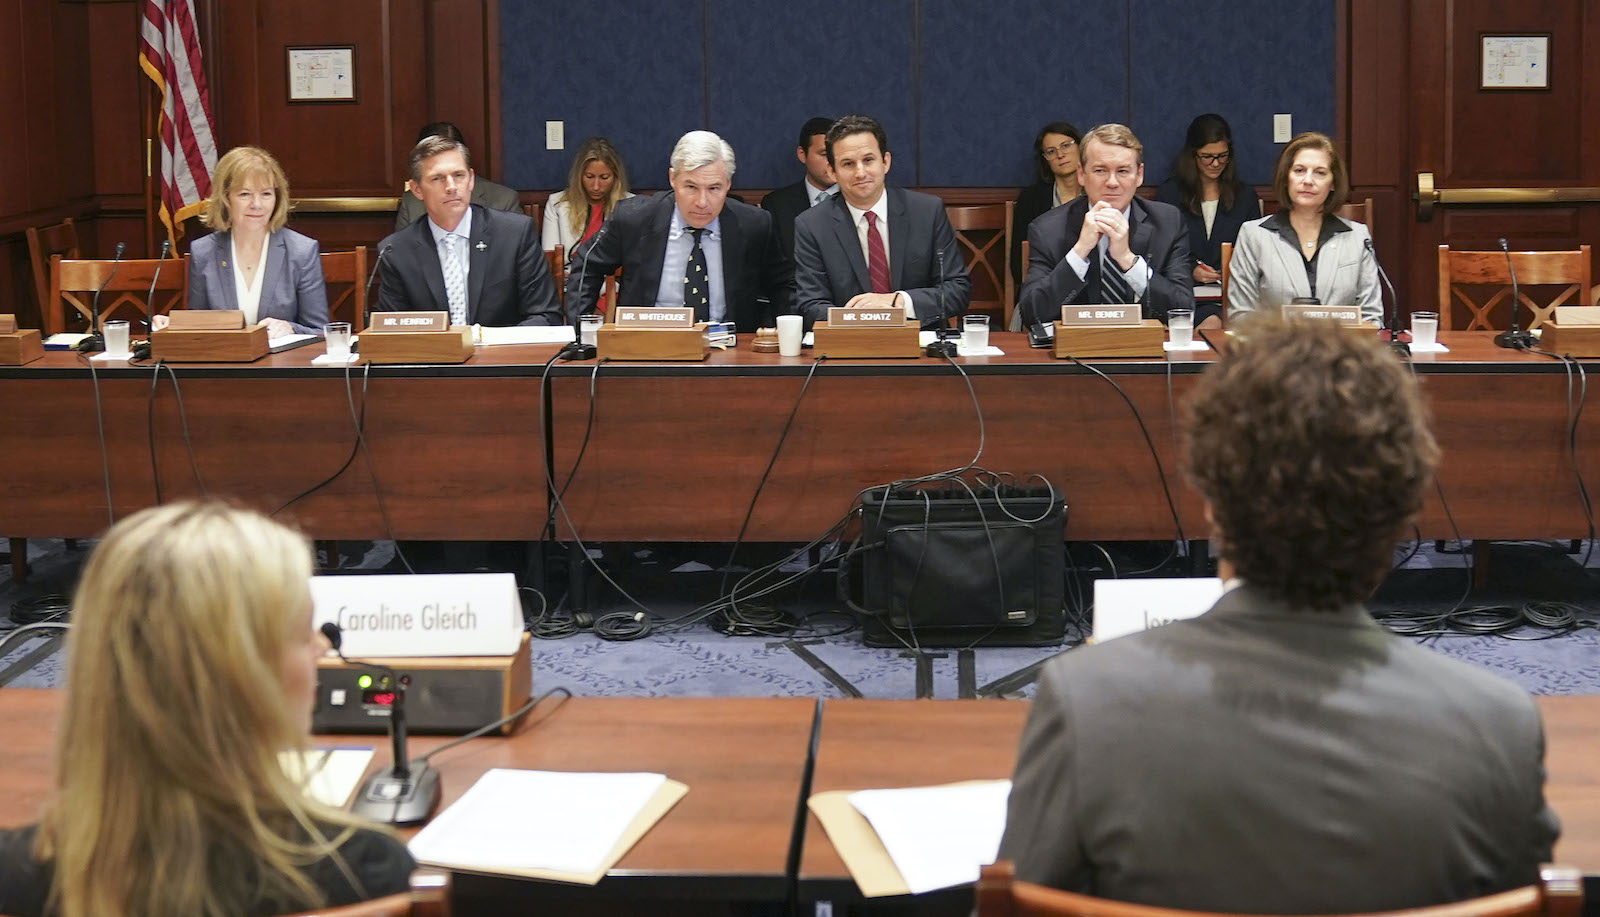 The Senate Committee on the Climate Criss holds a hearing.